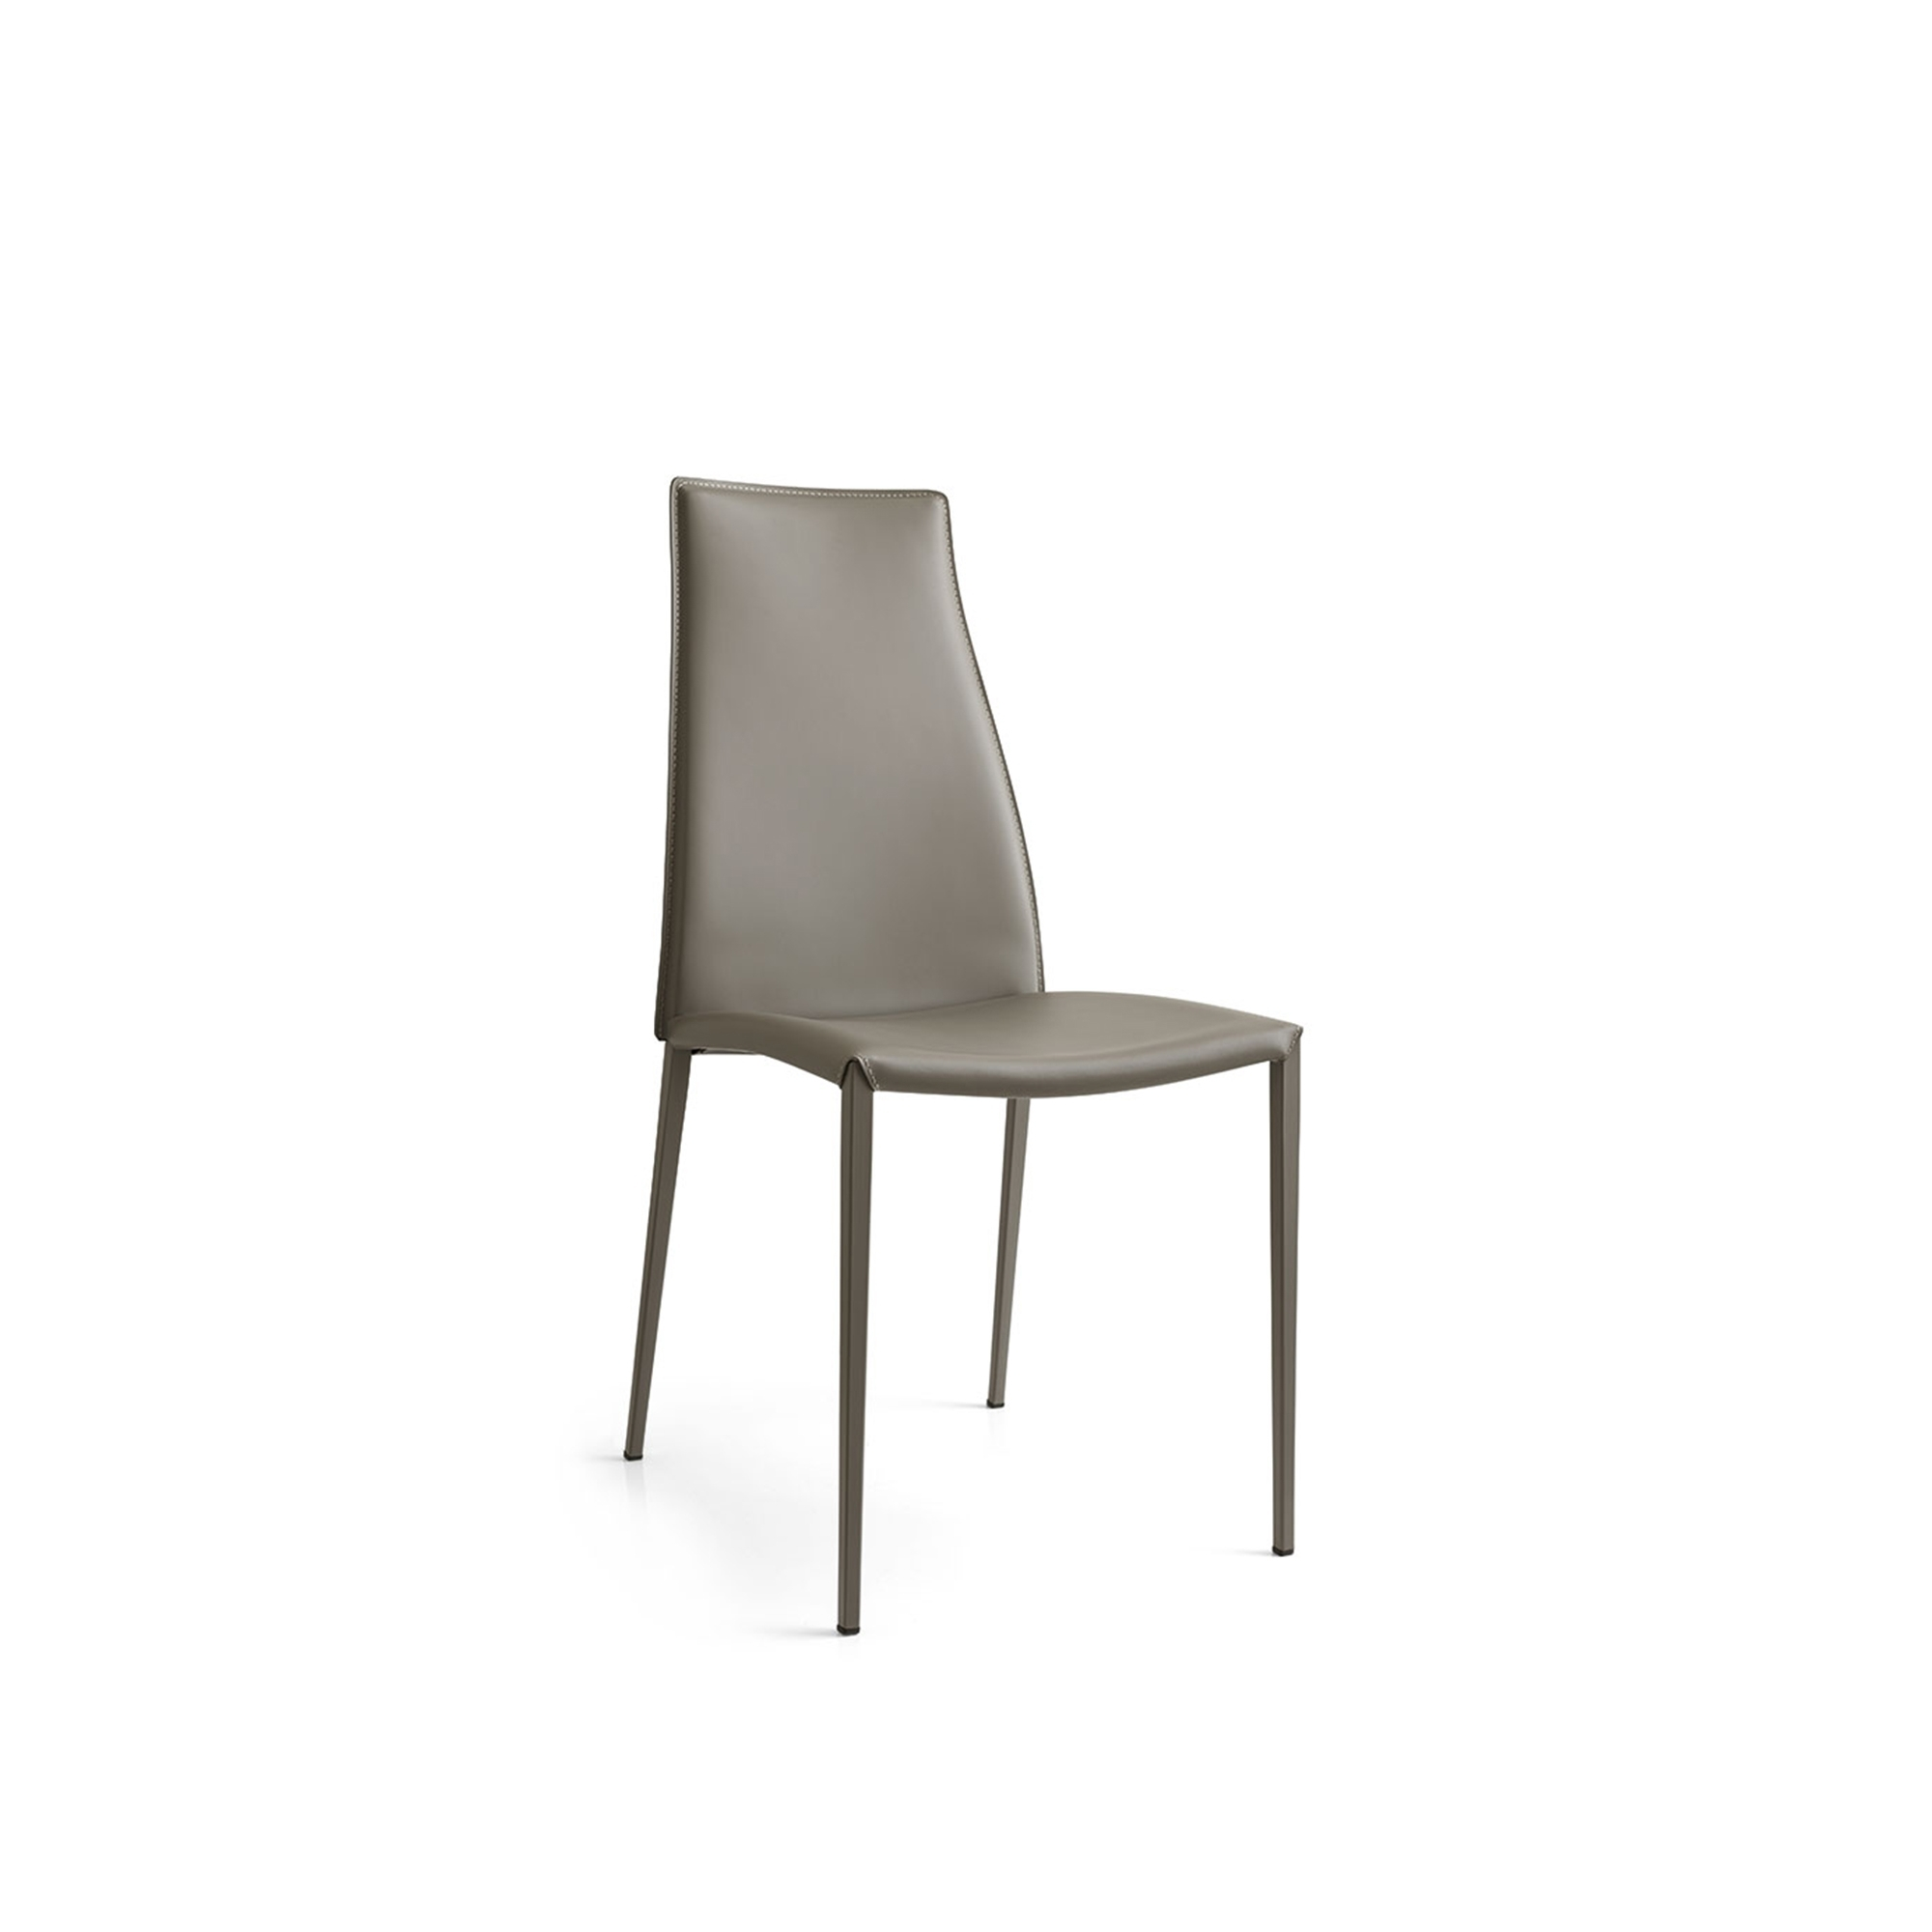 calligaris dining chair. Calligaris Aida Dining Chair I